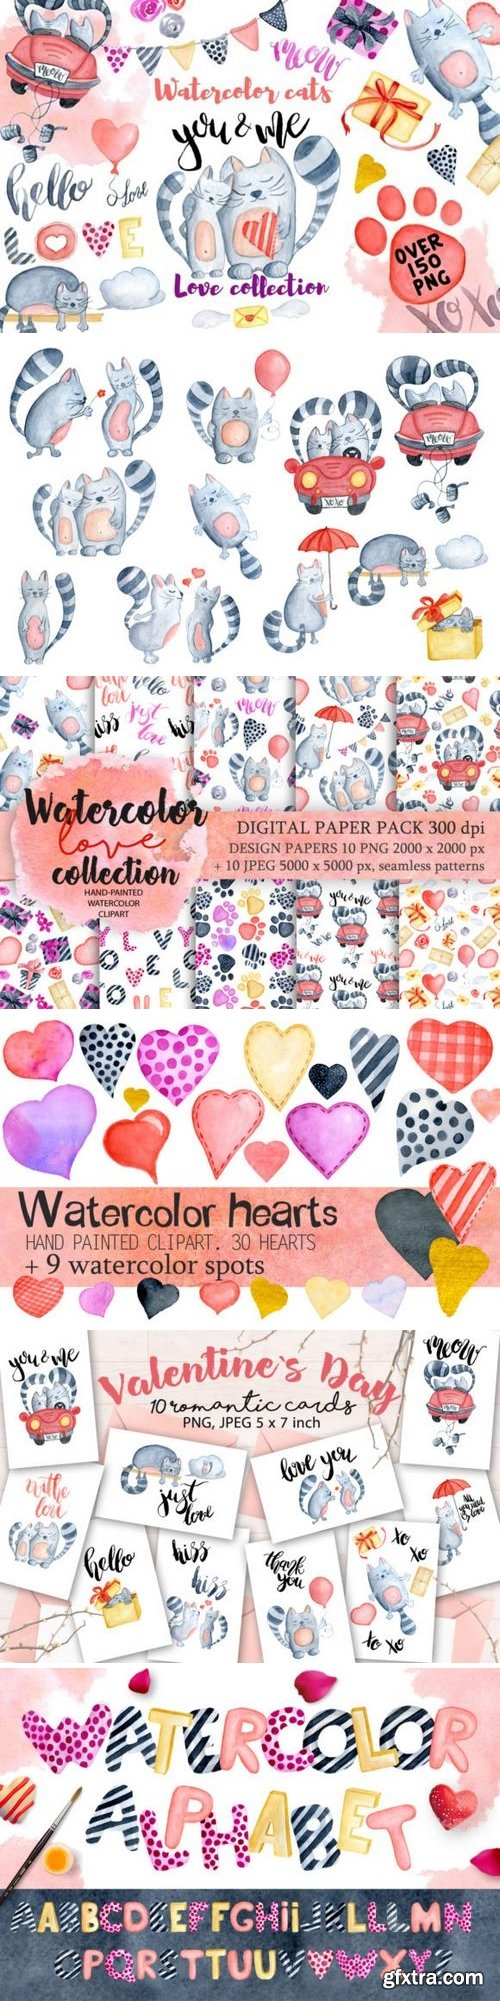 CM - Watercolor Valentines day cats 1179103